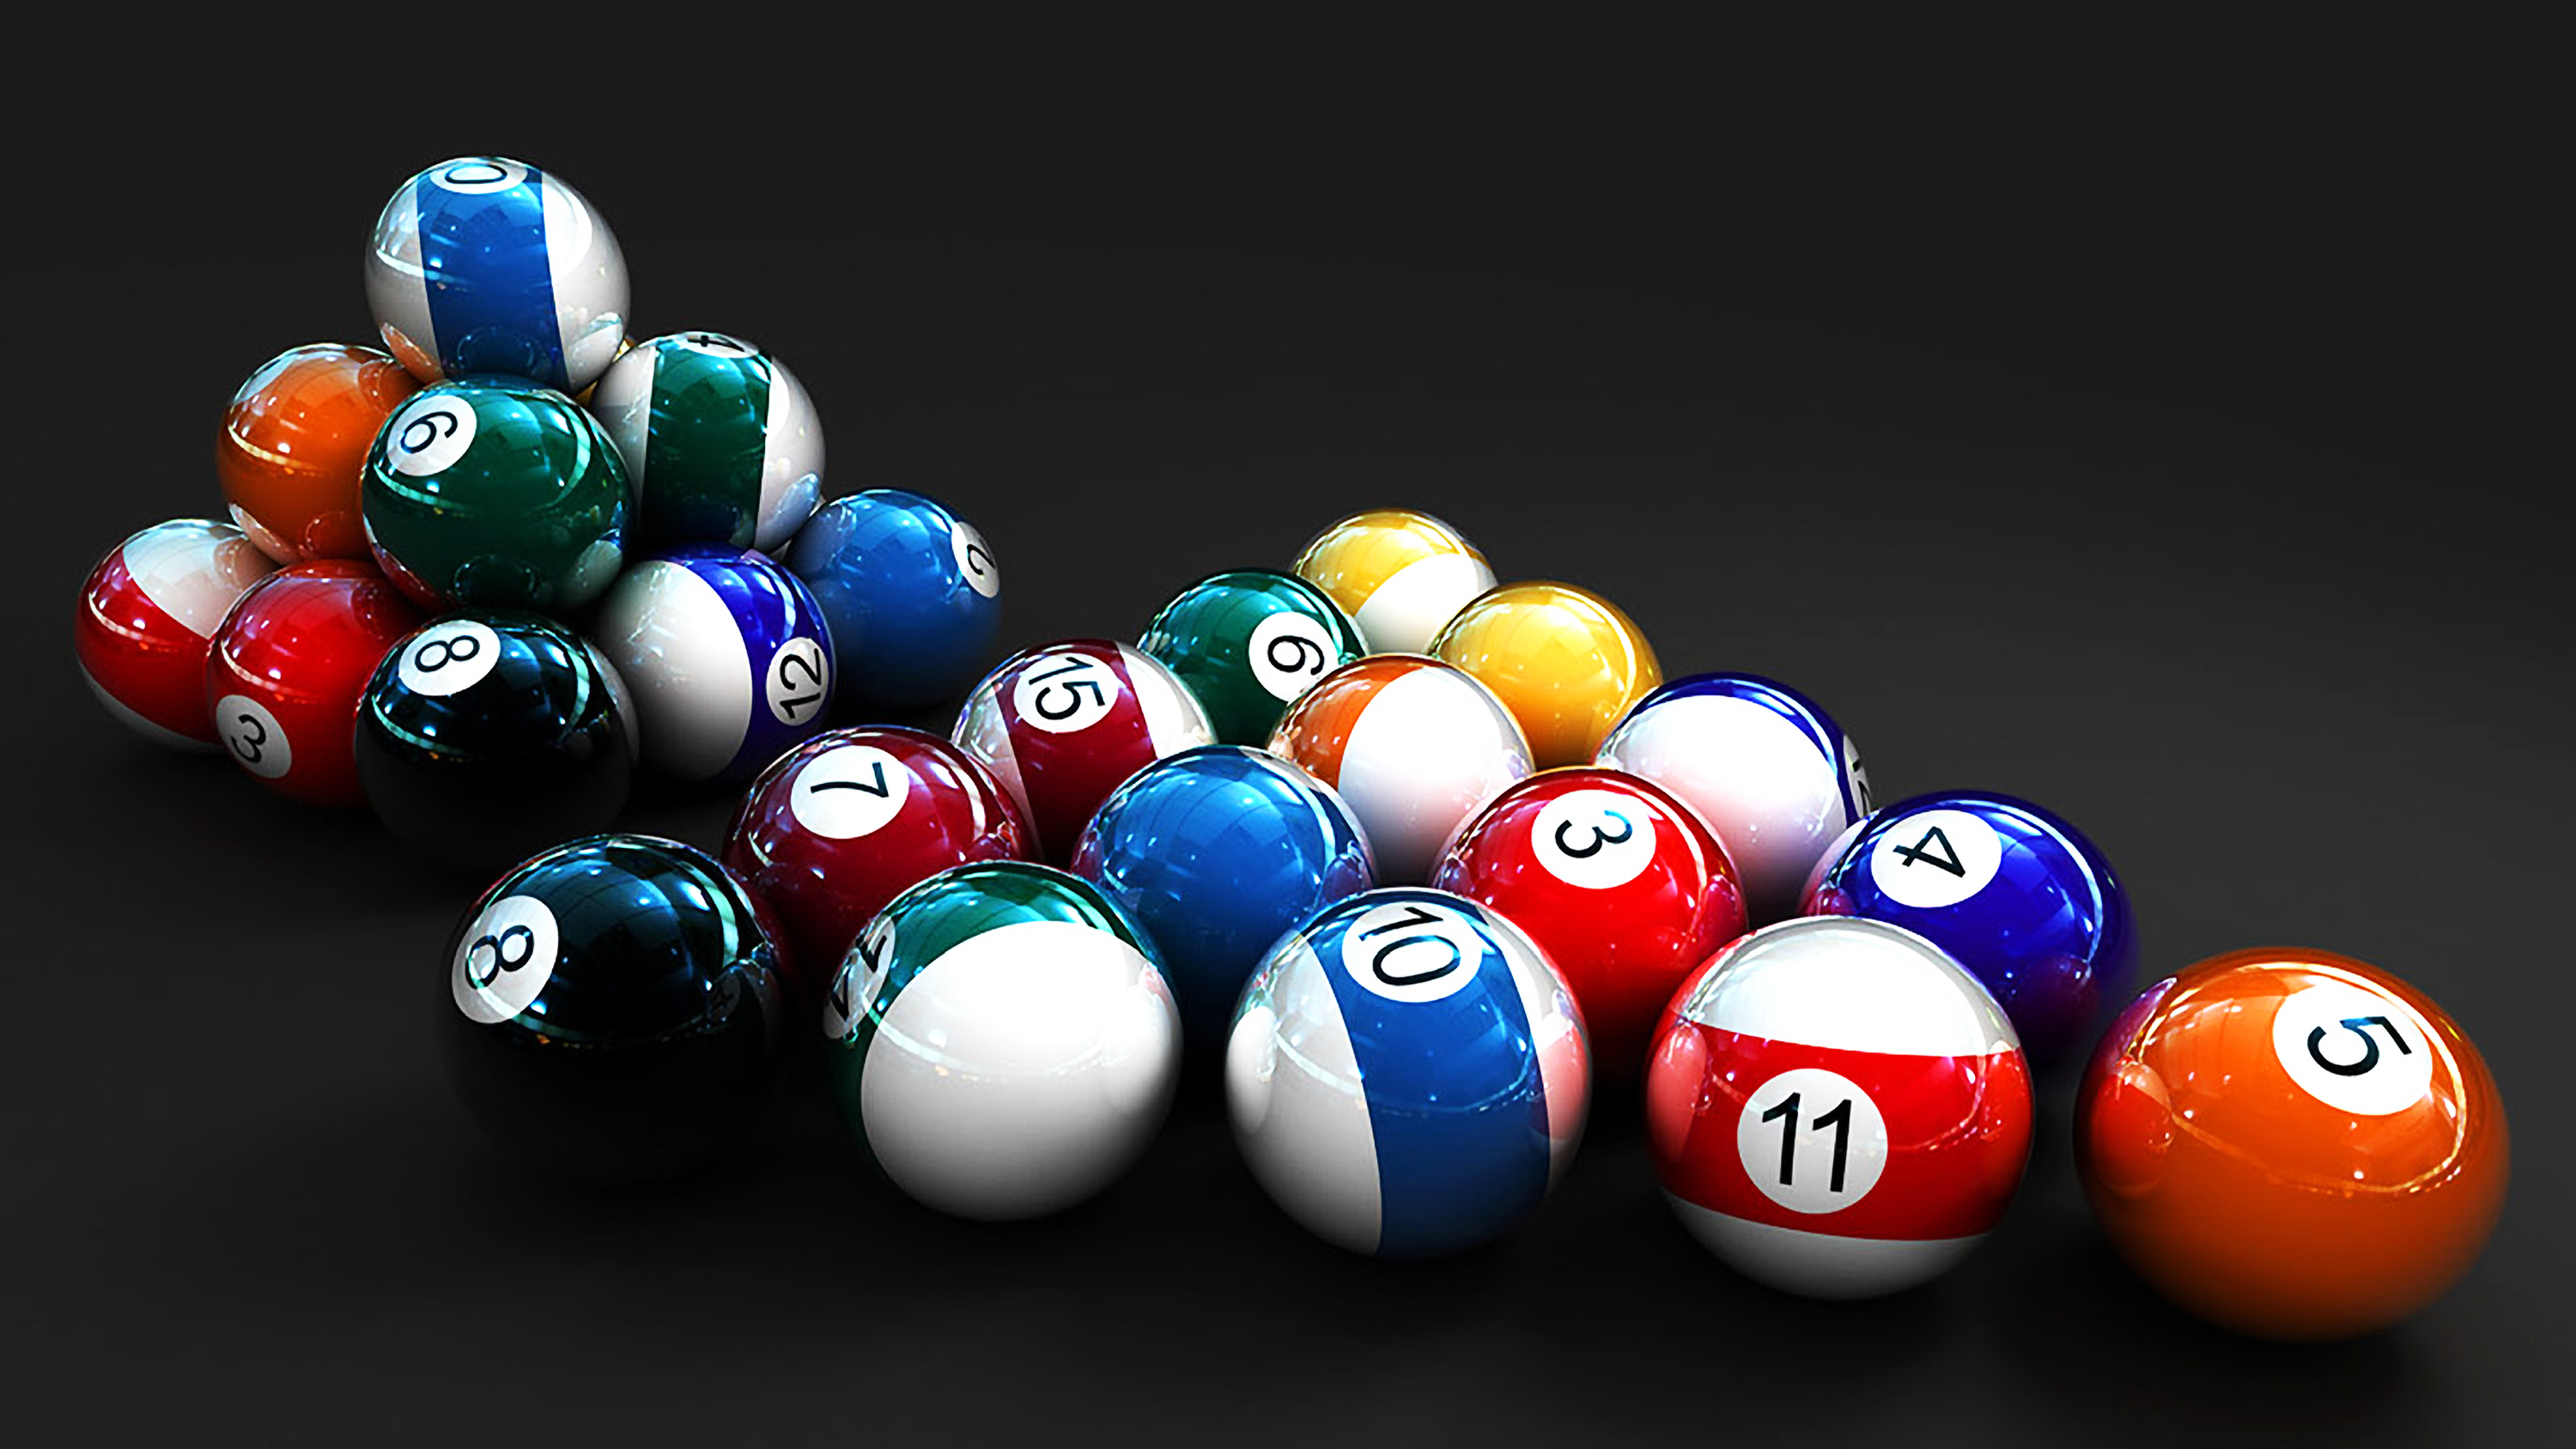 3D Billiard Balls By Llexandro On DeviantArt